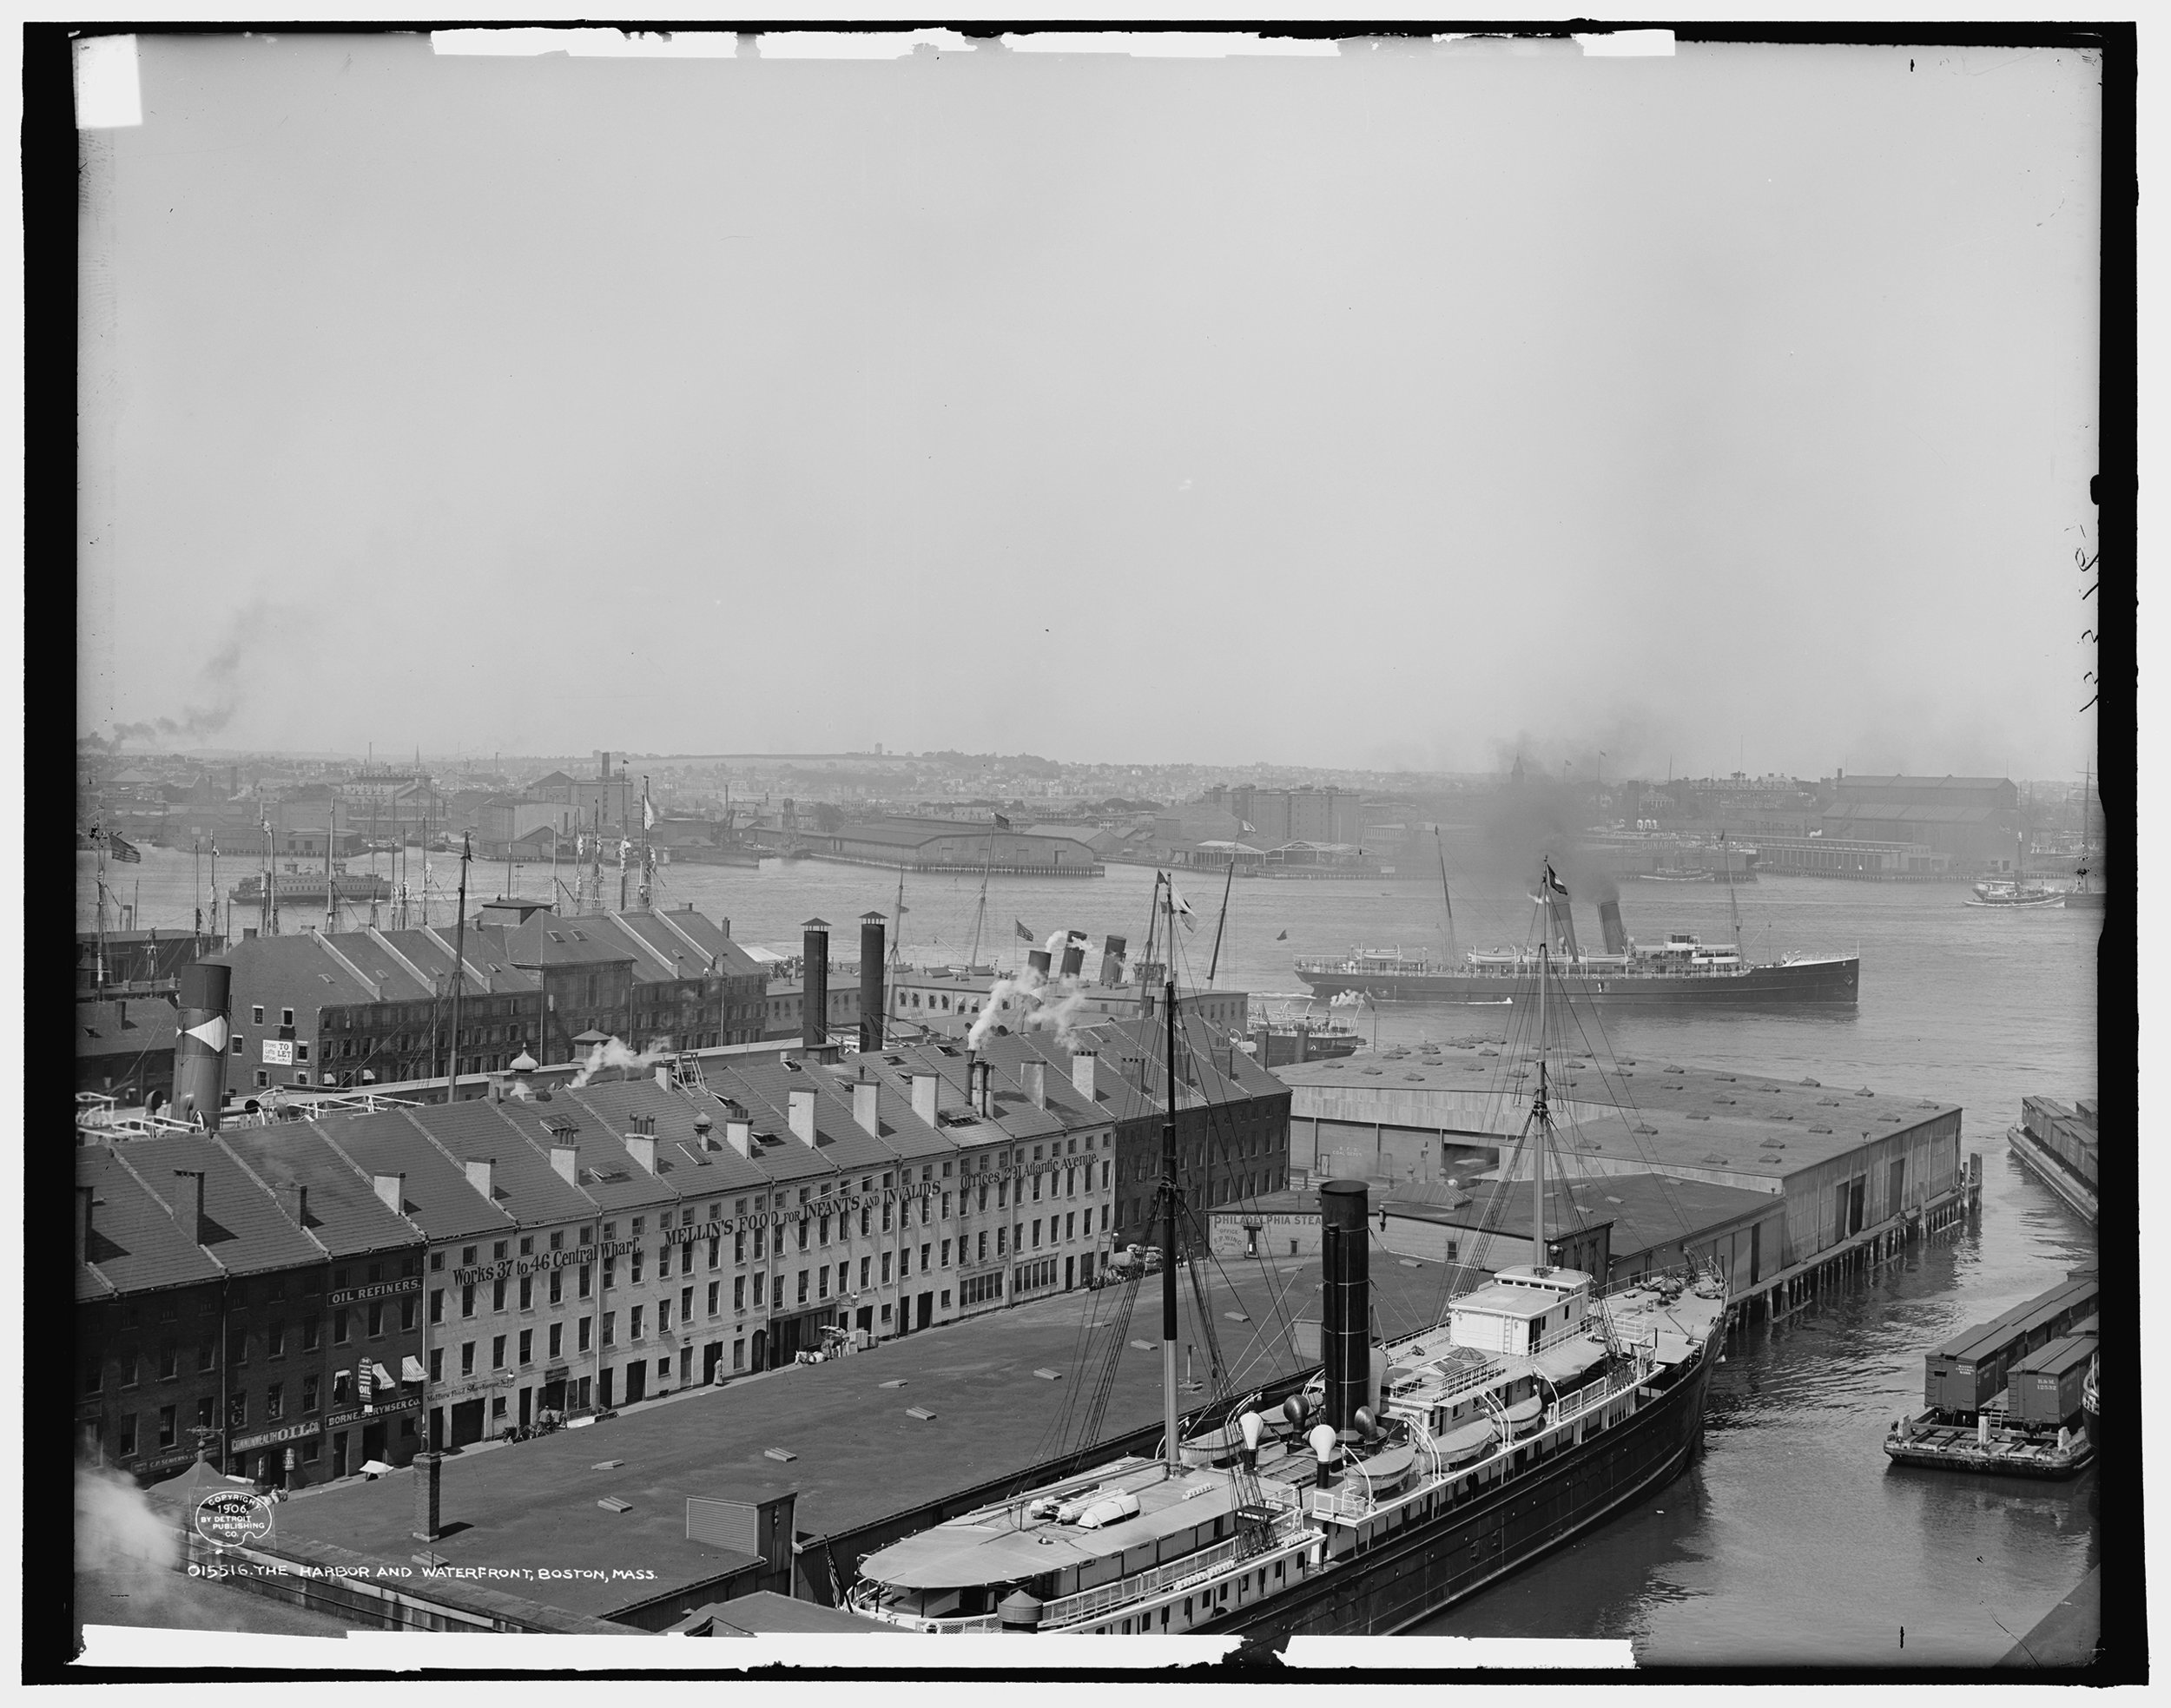 The Boston Harbor in ca. 1906, showing the Central Wharf (foreground) and Long Wharf. East Boston is visible in the distance.